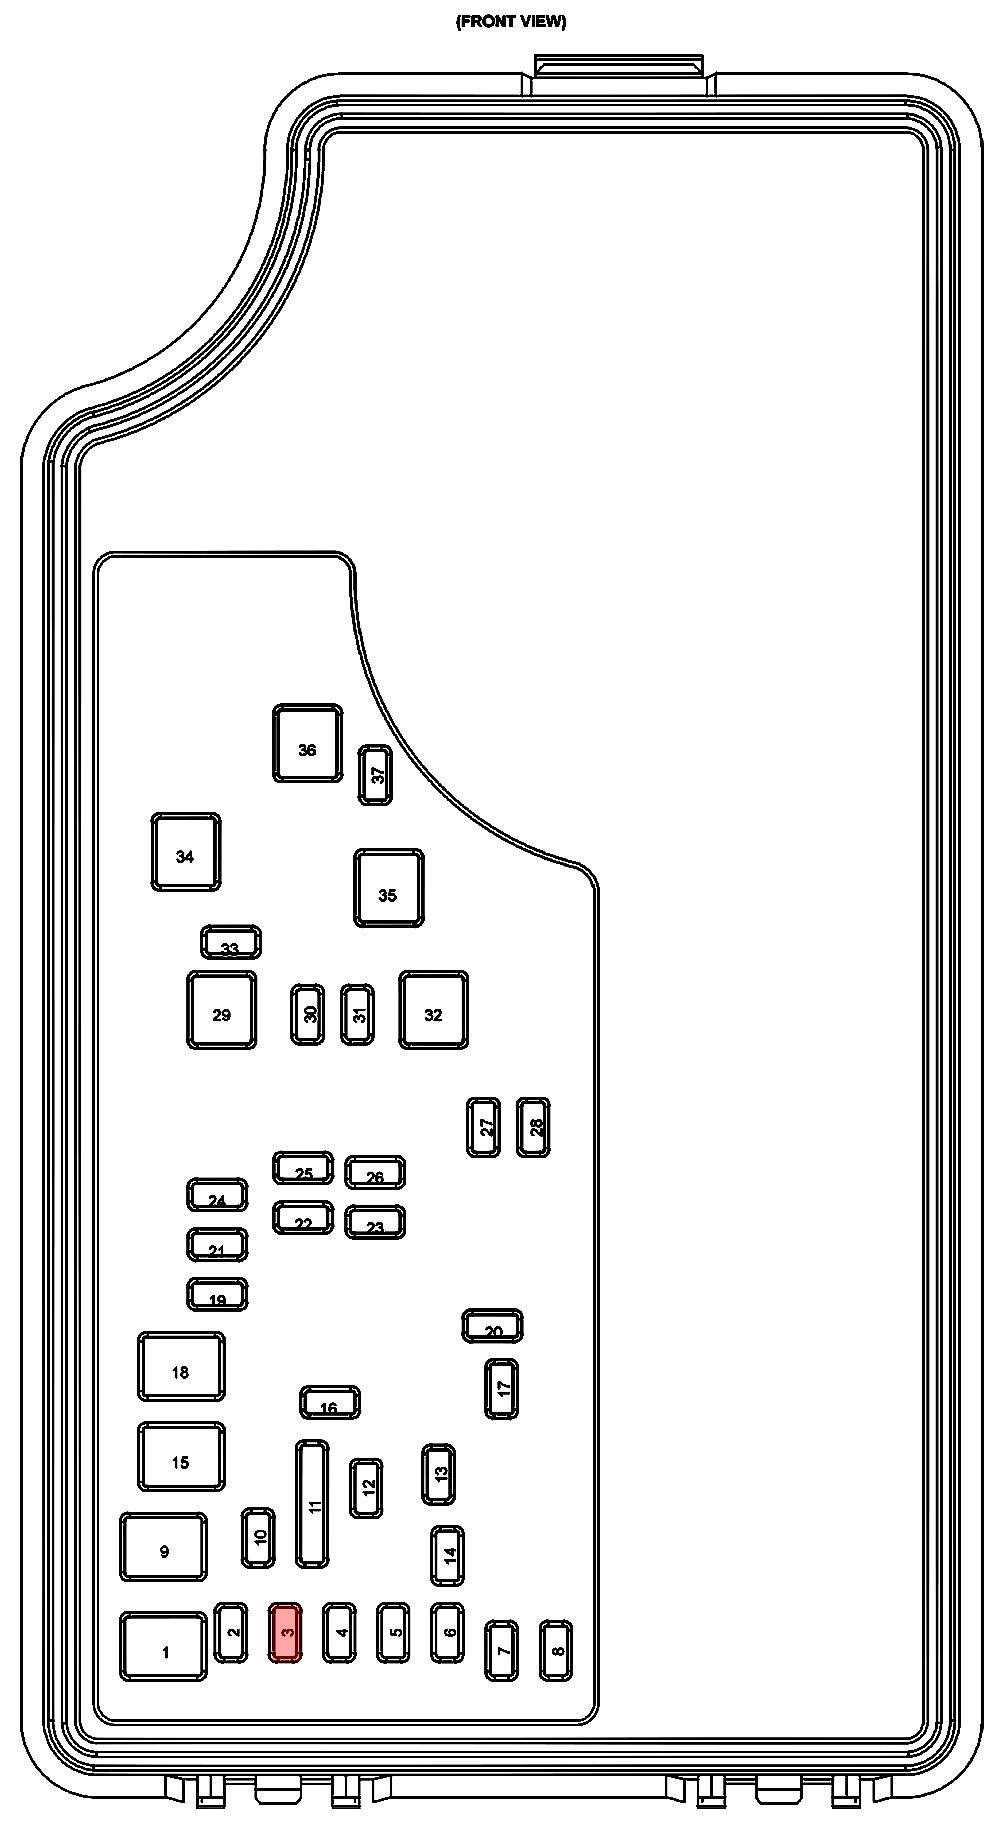 2008 sebring fuse panel diagram - 1989 honda accord engine diagram for wiring  diagram schematics  wiring diagram schematics